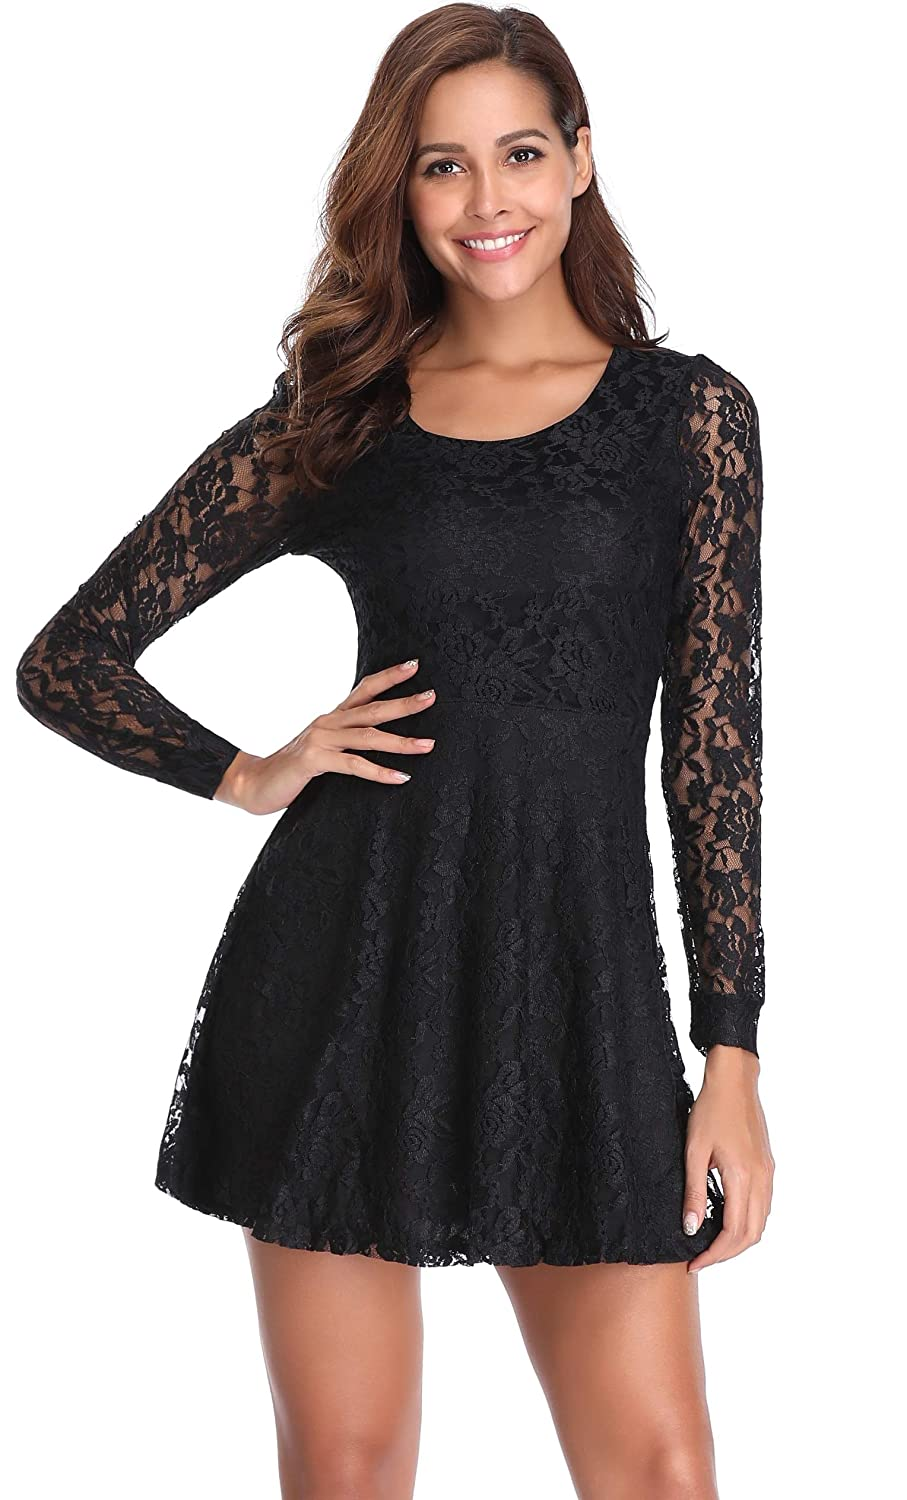 137f9bc64ab Argstar Women s Scoop Neck Sheer Long Sleeves Floral Lace Dress ...